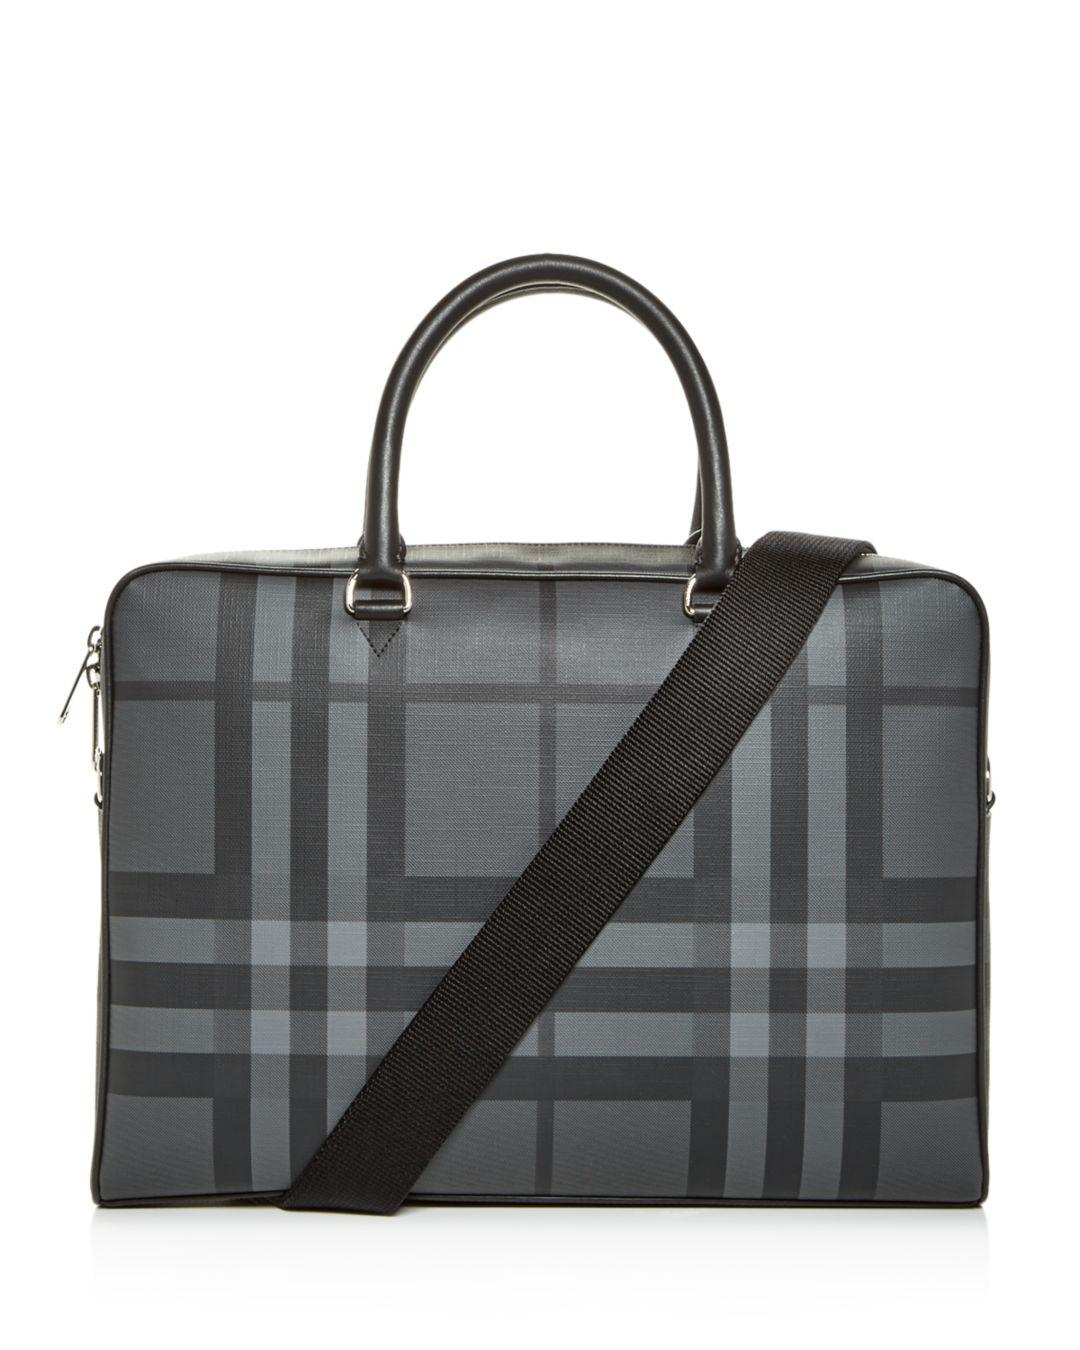 7d997707ce41 Lyst - Burberry London Check And Leather Briefcase in Black for Men